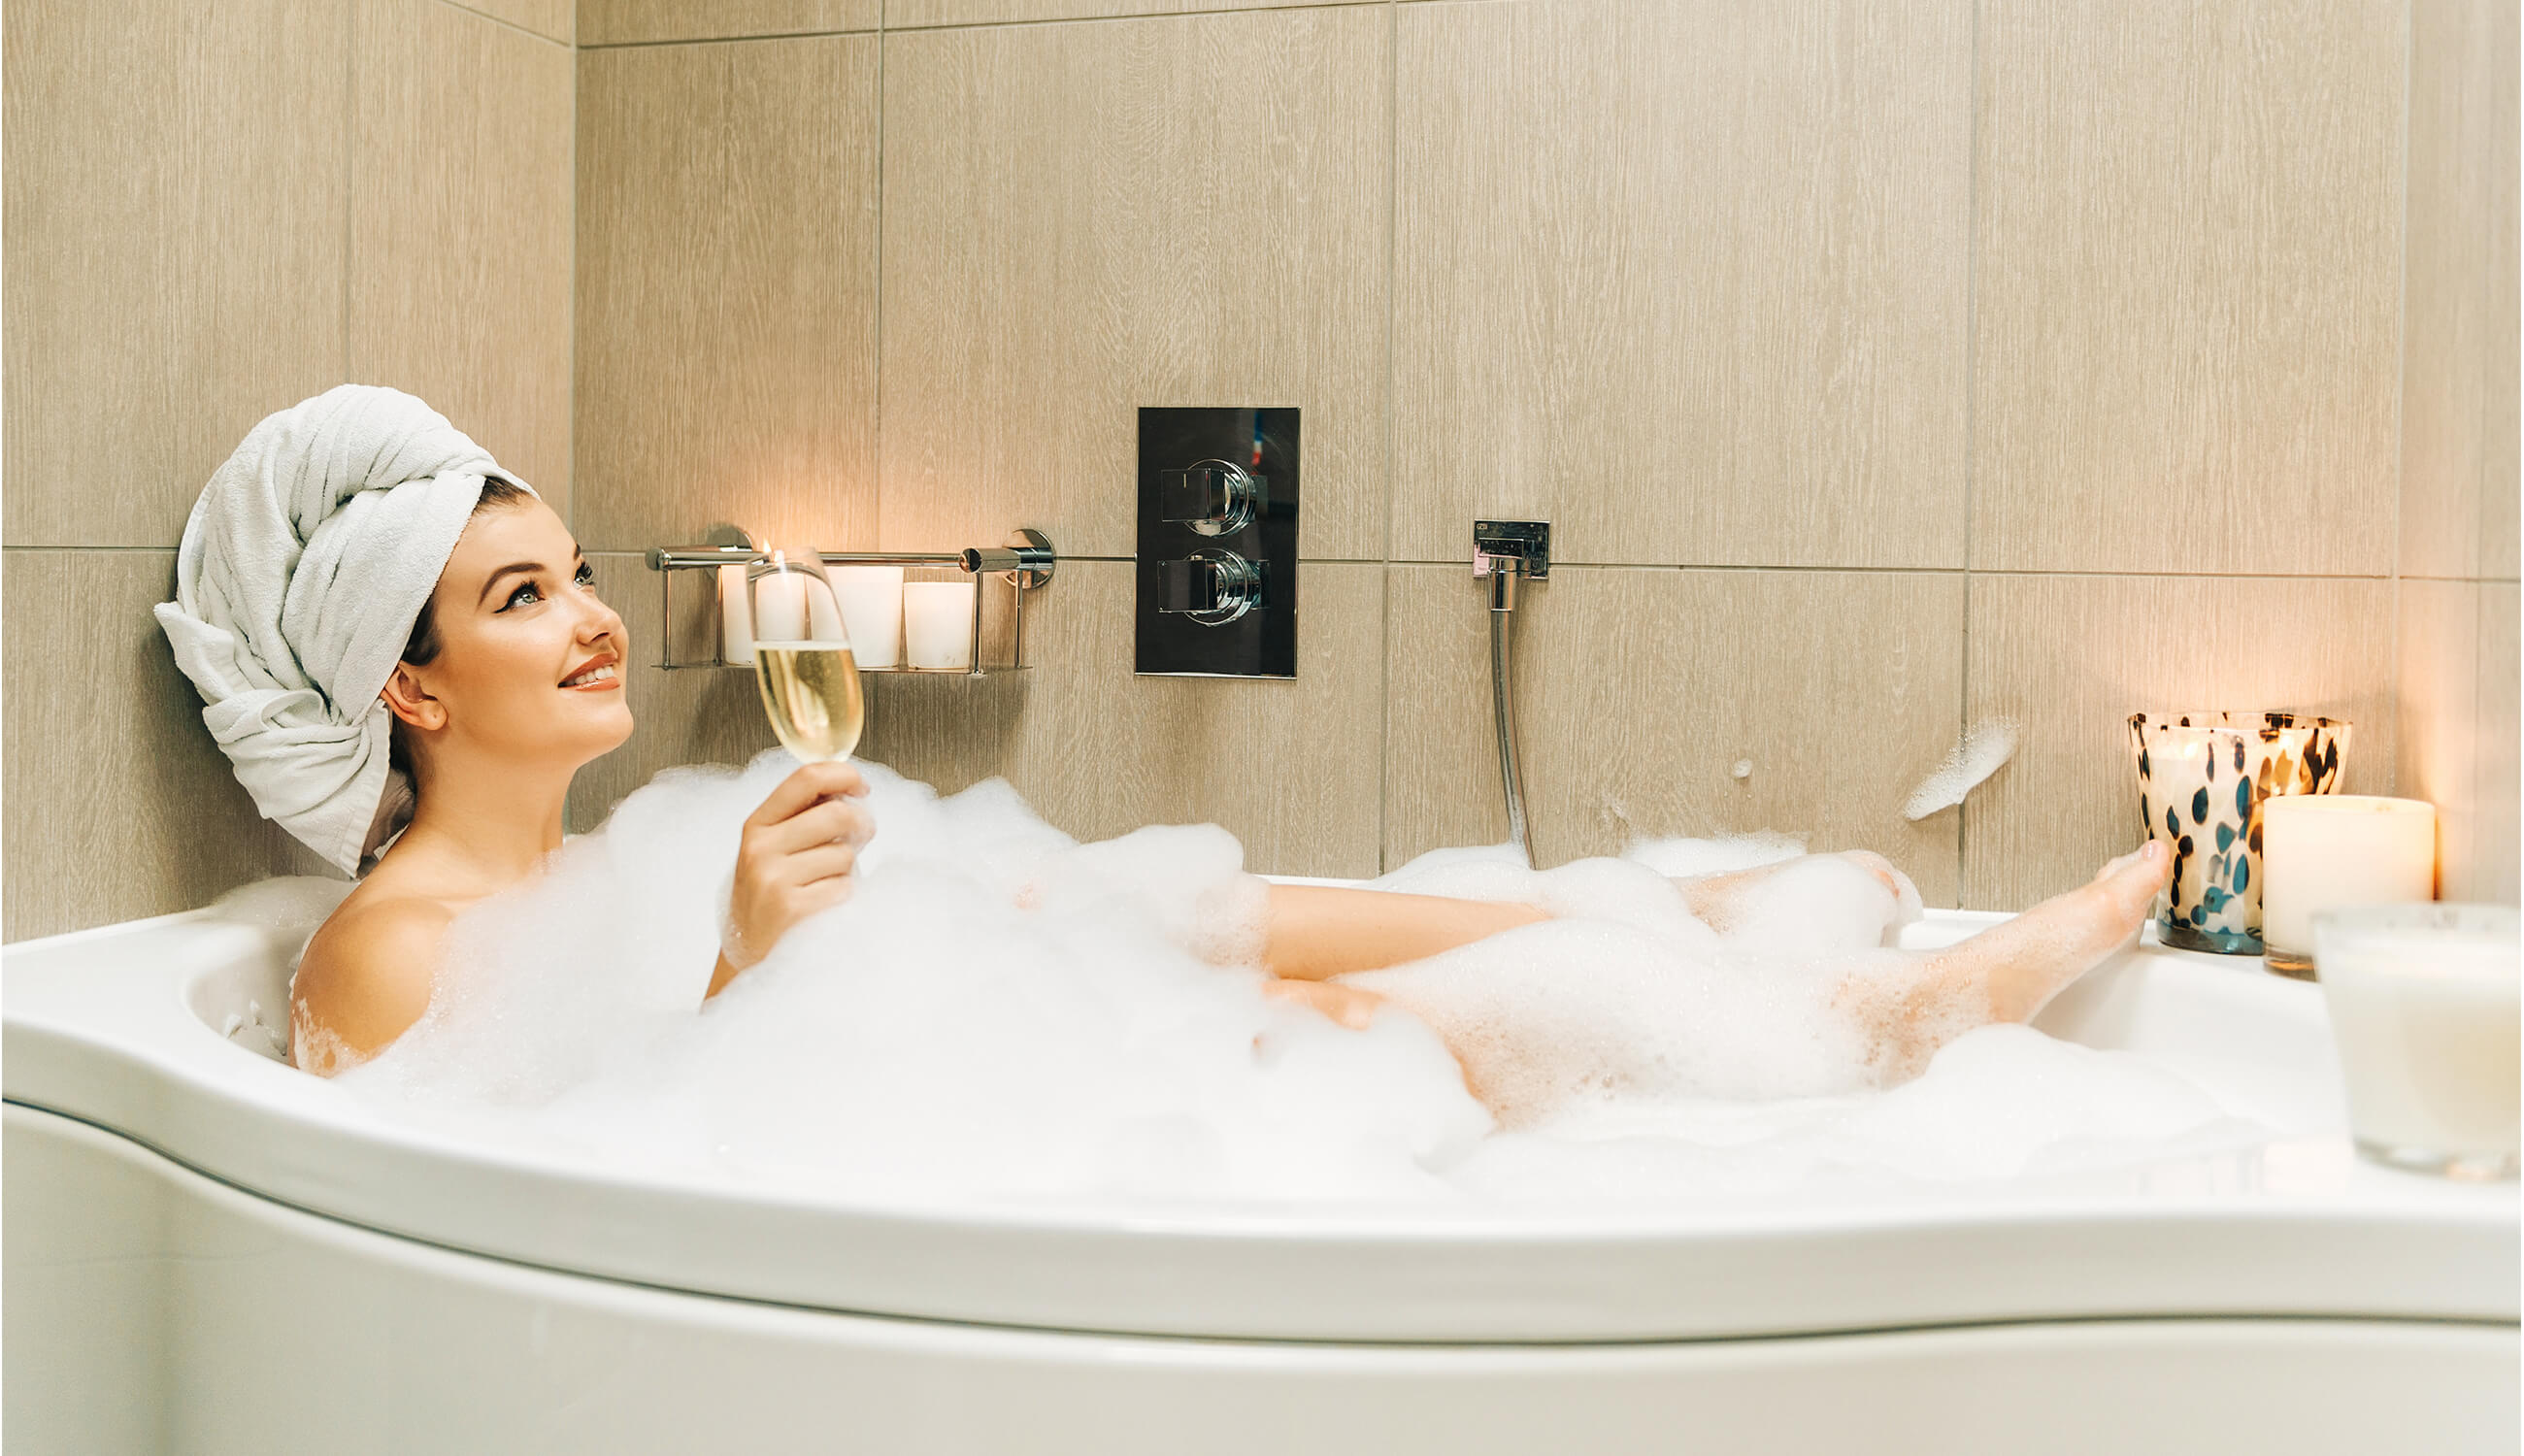 Main_relax in a tub with wine